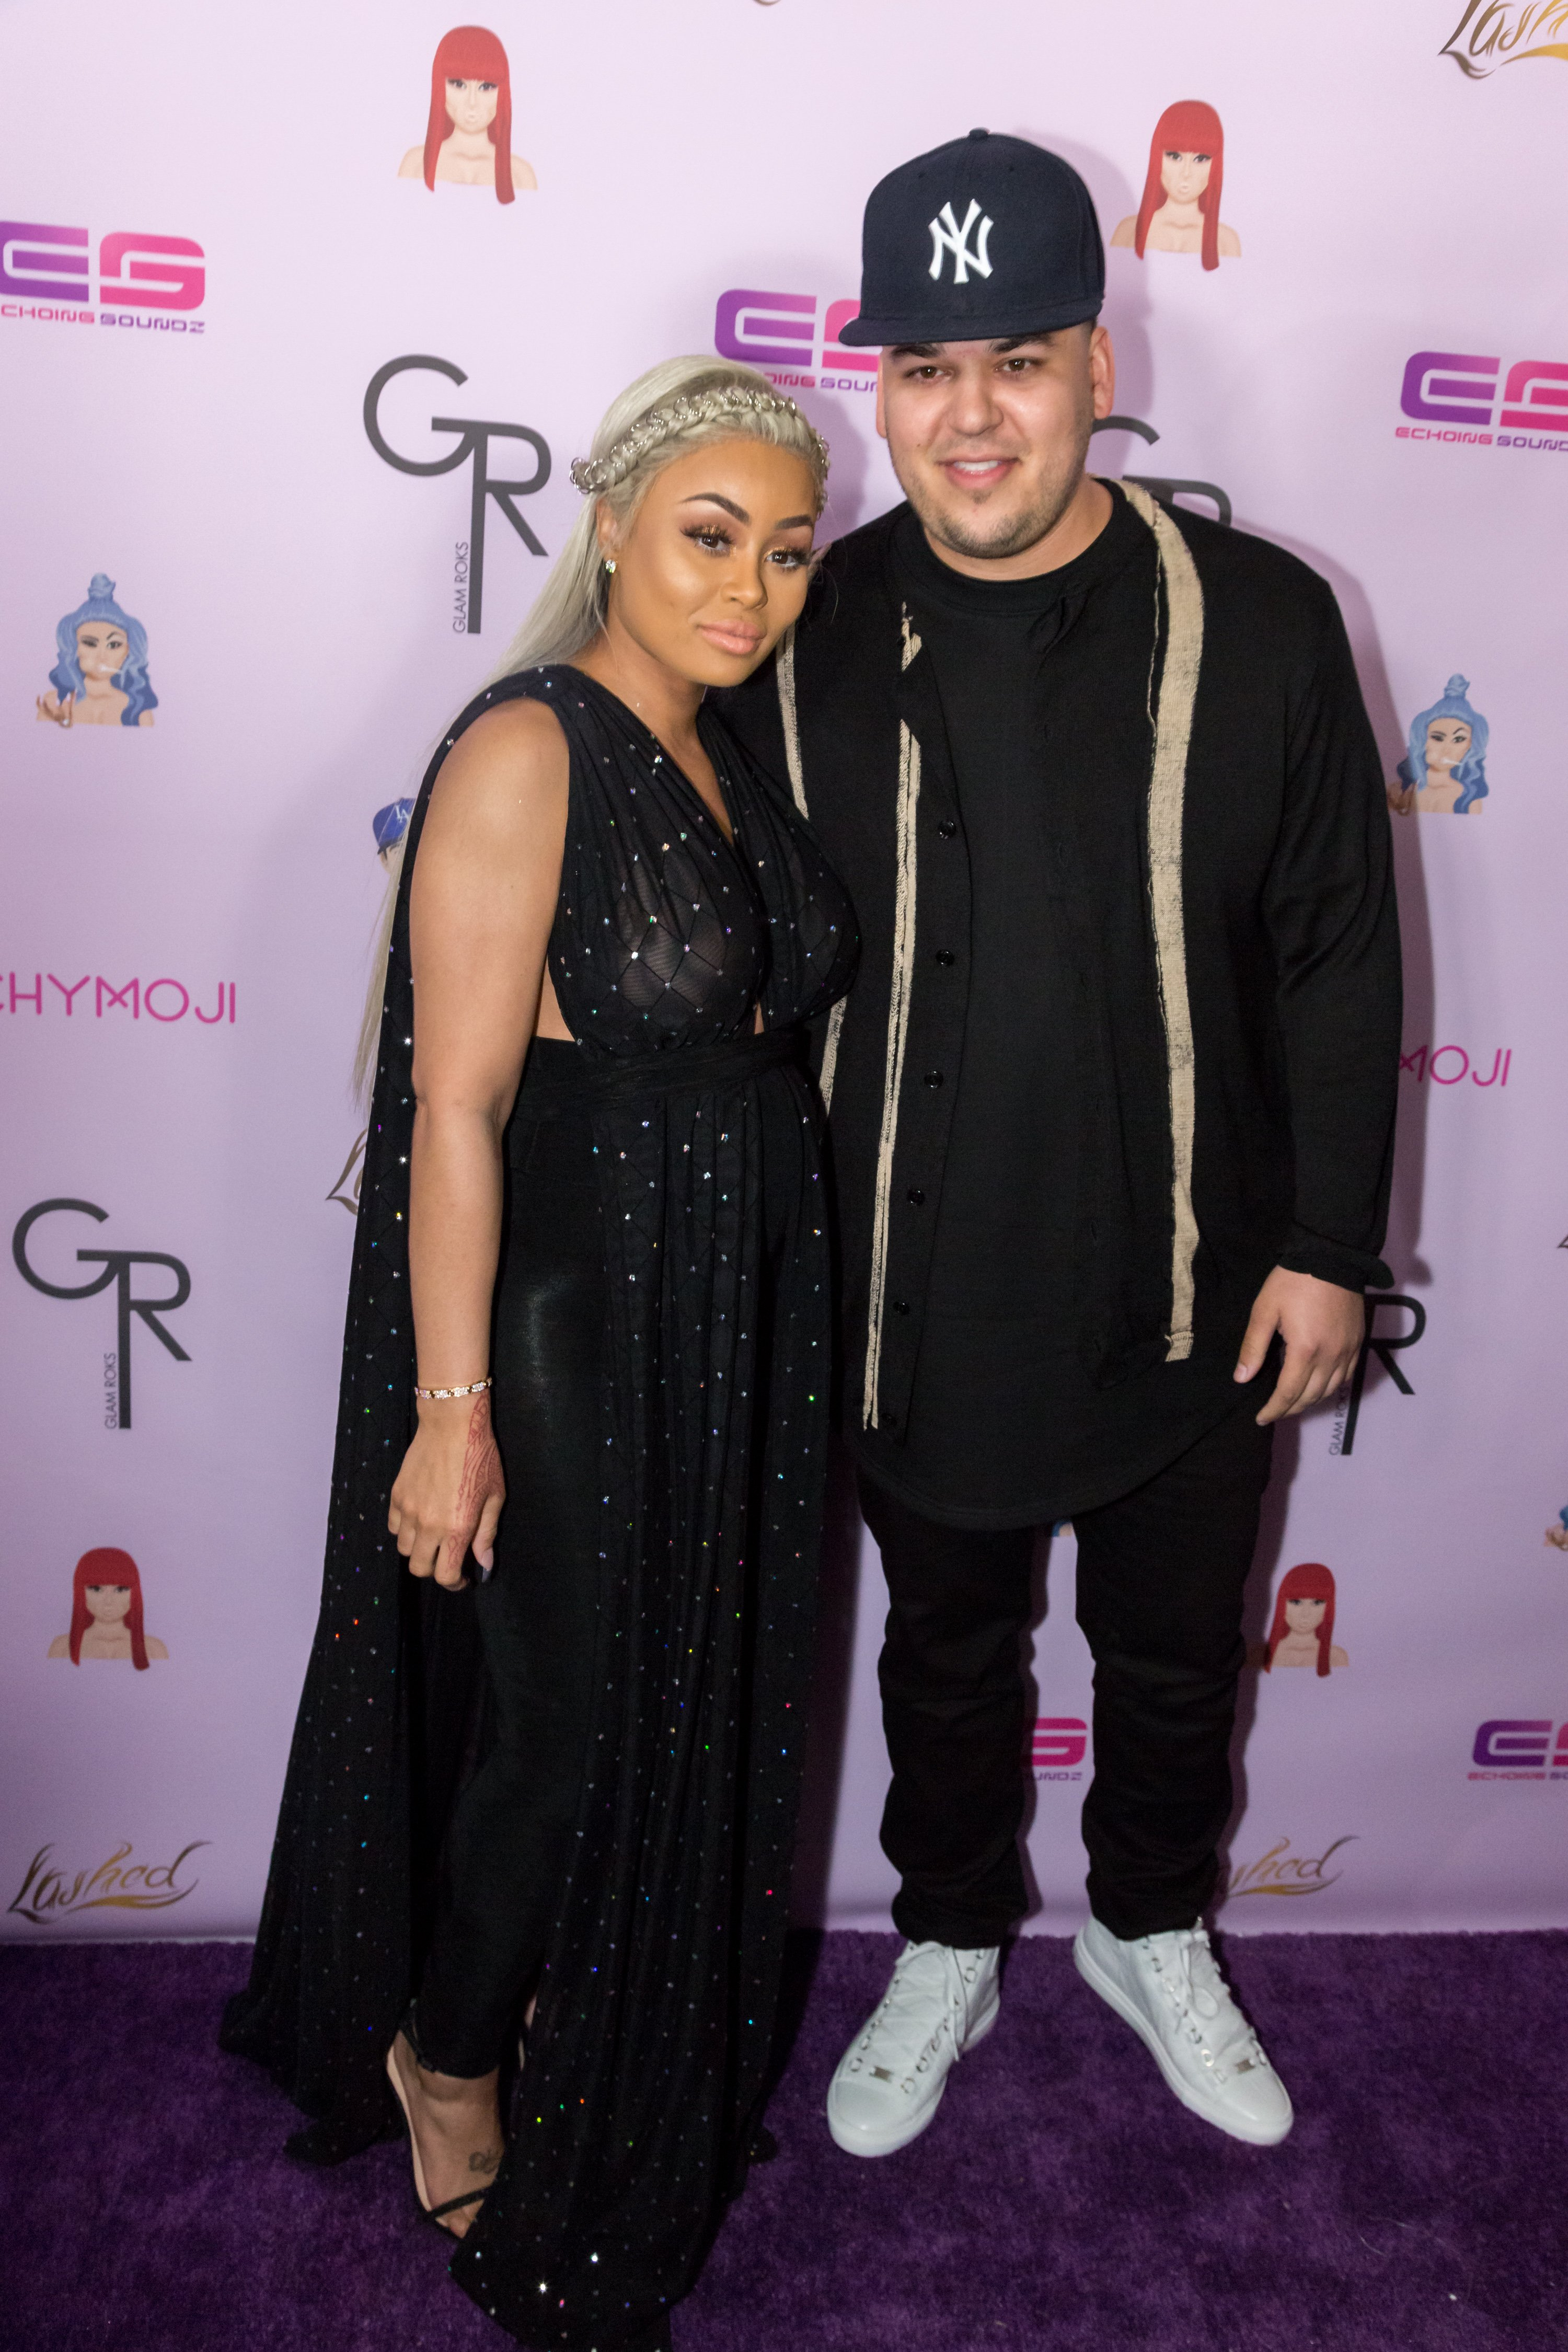 Rob Kardashian with Blac Chyna during her birthday celebration in Hollywood in May 2016. | Photo: Getty Images